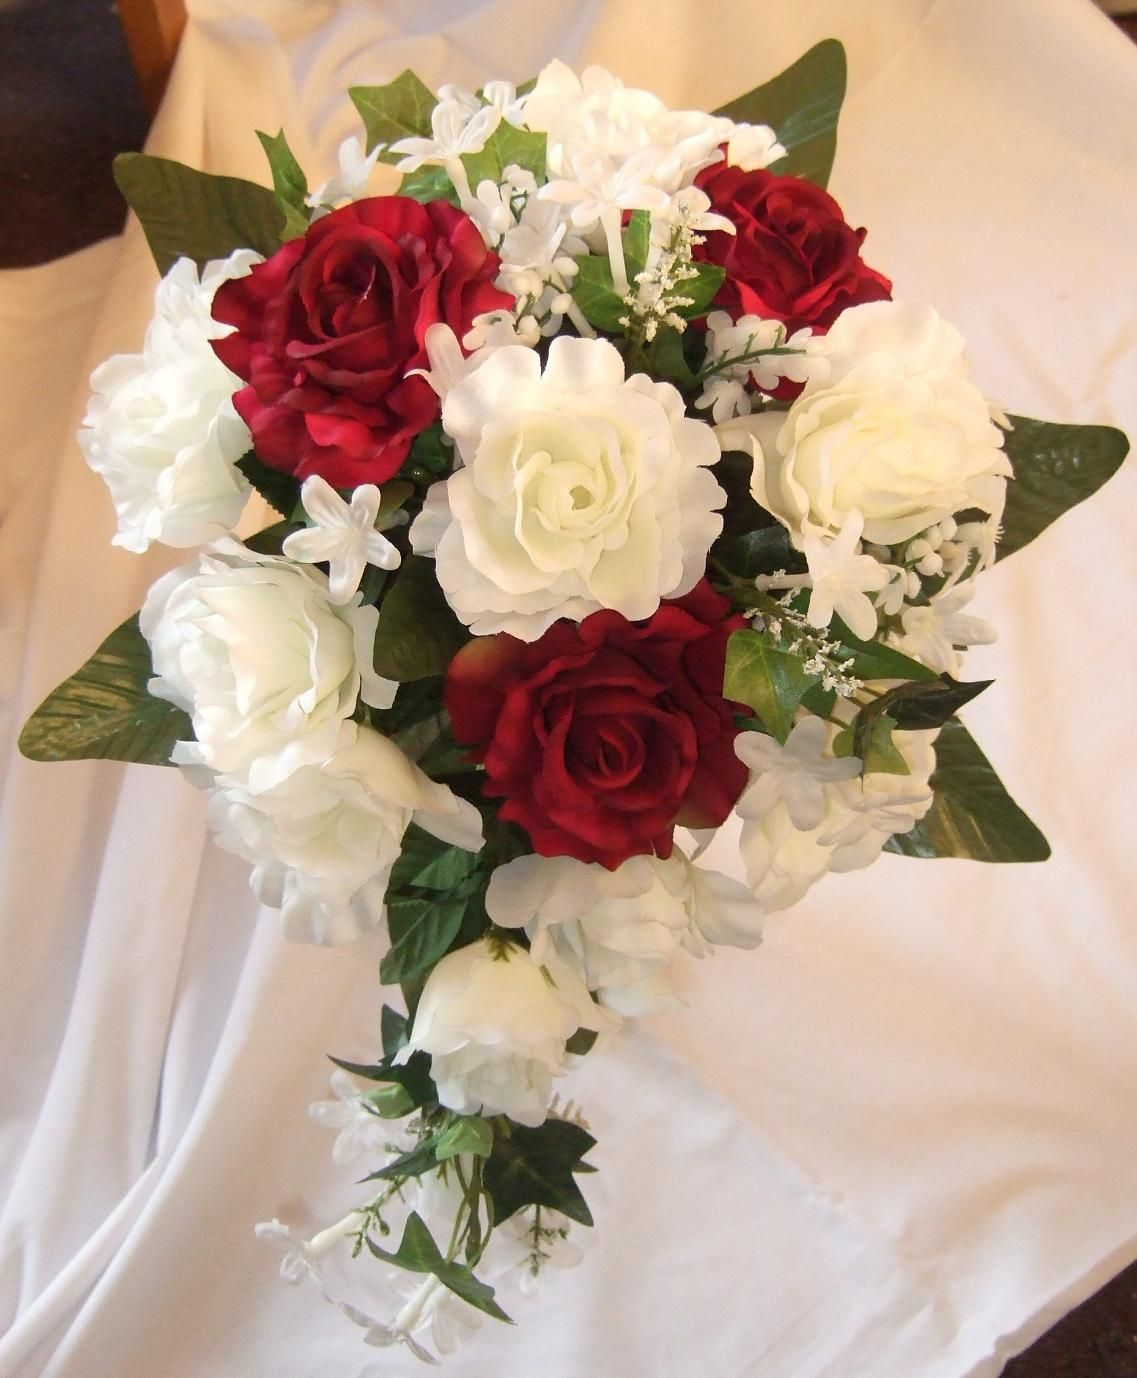 wedding flower arrangements Wedding Flower Bouquets Flower Ideas Burgundy and white roses Burgundy Silk Wedding Flower